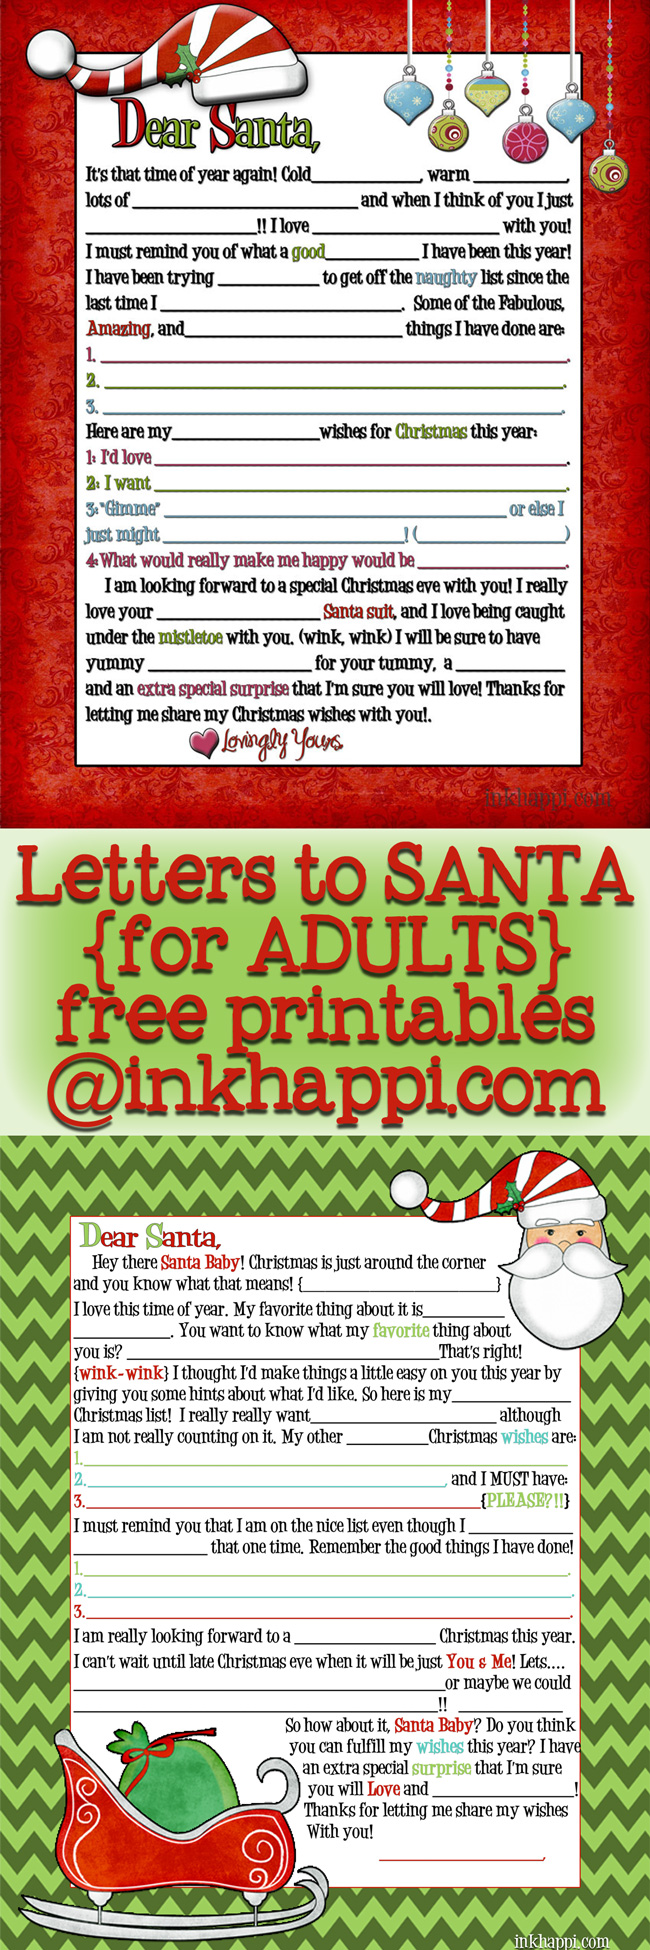 Adult Letter From Santa 22